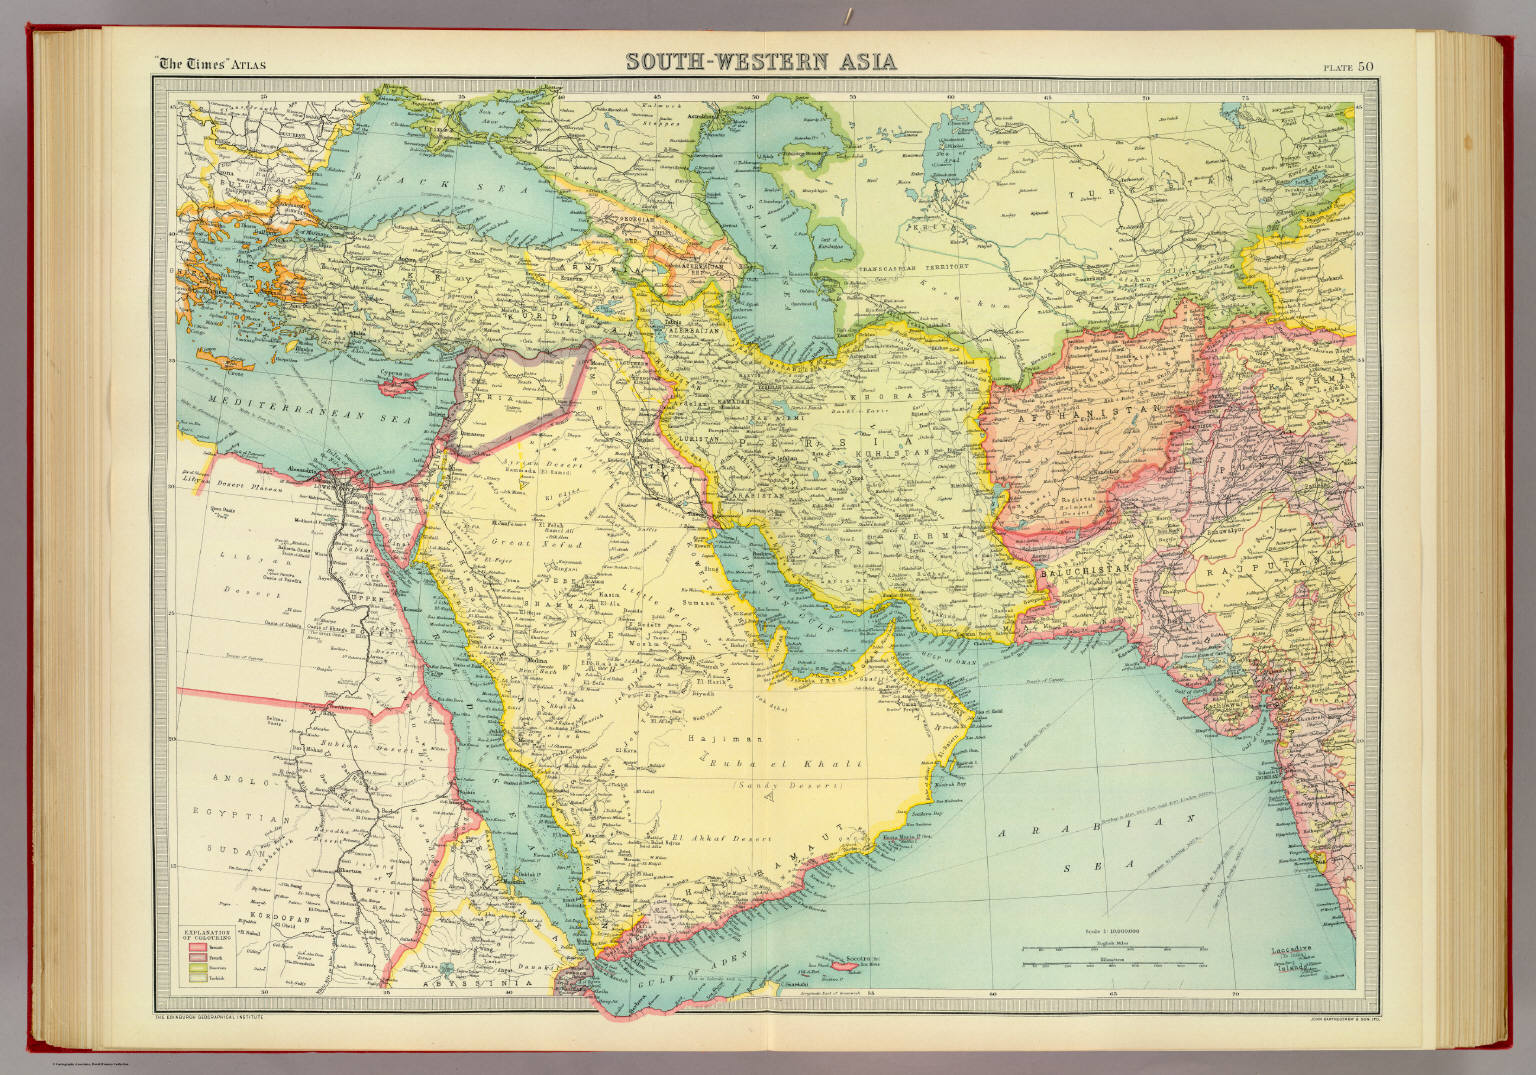 South-western Asia. - David Rumsey Historical Map Collection on northern cyprus, blank map of asia, map of middle east, map of southwestern asia, map of eastern europe, map of united kingdom, map of indonesia, map of europe with cities, map of uzbekistan, east asia, map of northwestern asia, map of southeast asia only, southeast asia, western europe, map of east asia, map of united states, south caucasus, north asia, horn of africa, map of ukraine, map of syria, northeast asia, south asia, map of mediterranean basin, map of europe and asia, map of baghdad, map of africa, yemen arab republic, map of turkey, near east, central asia, indian subcontinent, map of near east, arab world,